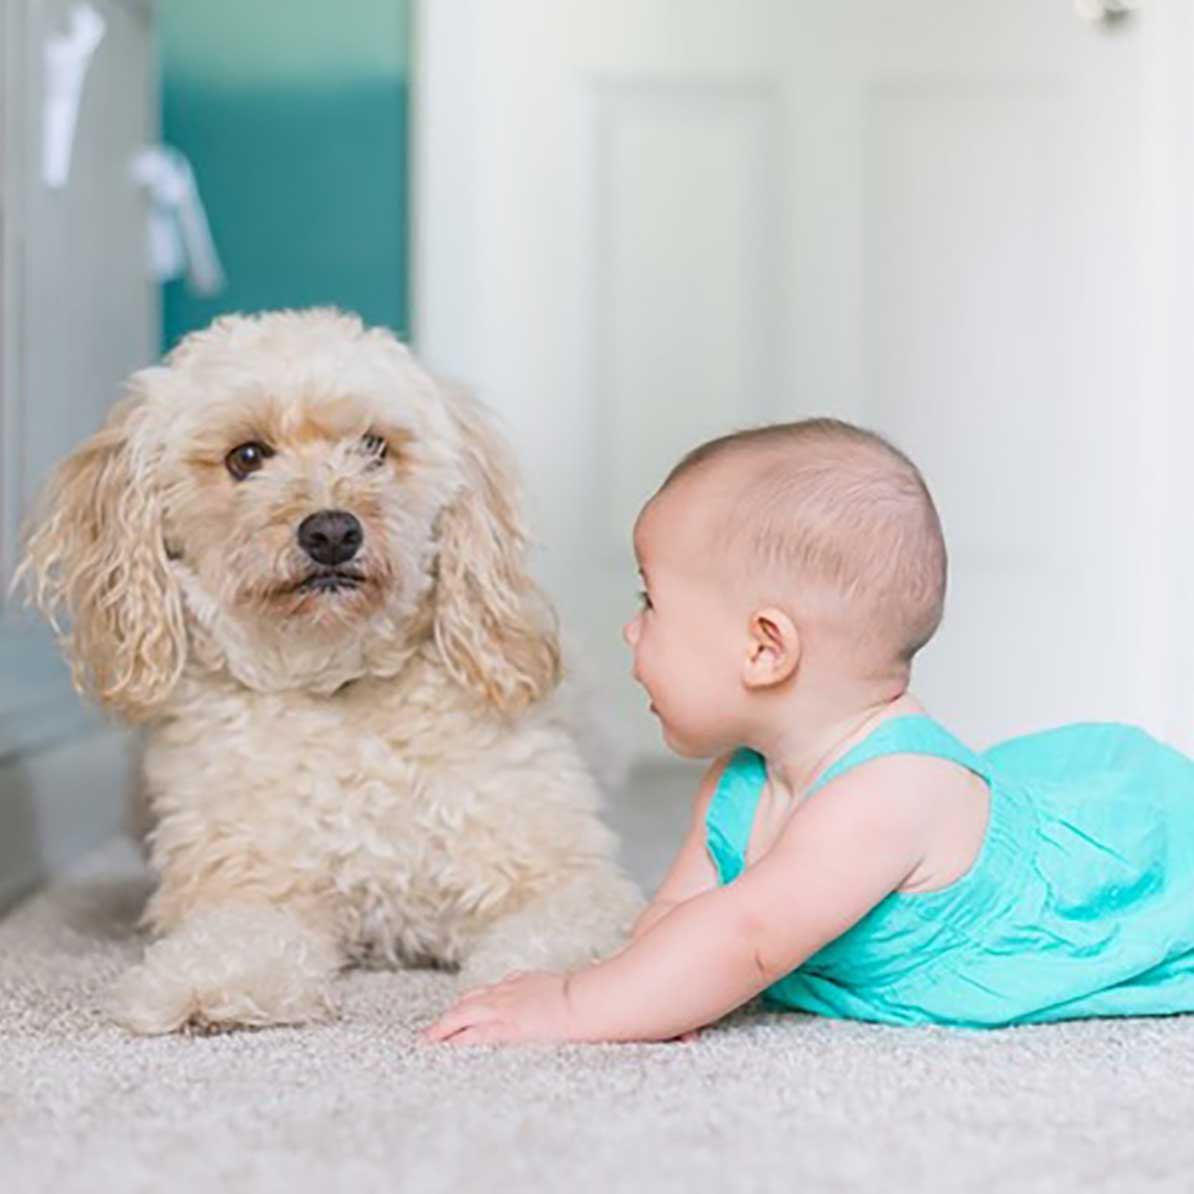 Puppy and baby laying on rug.